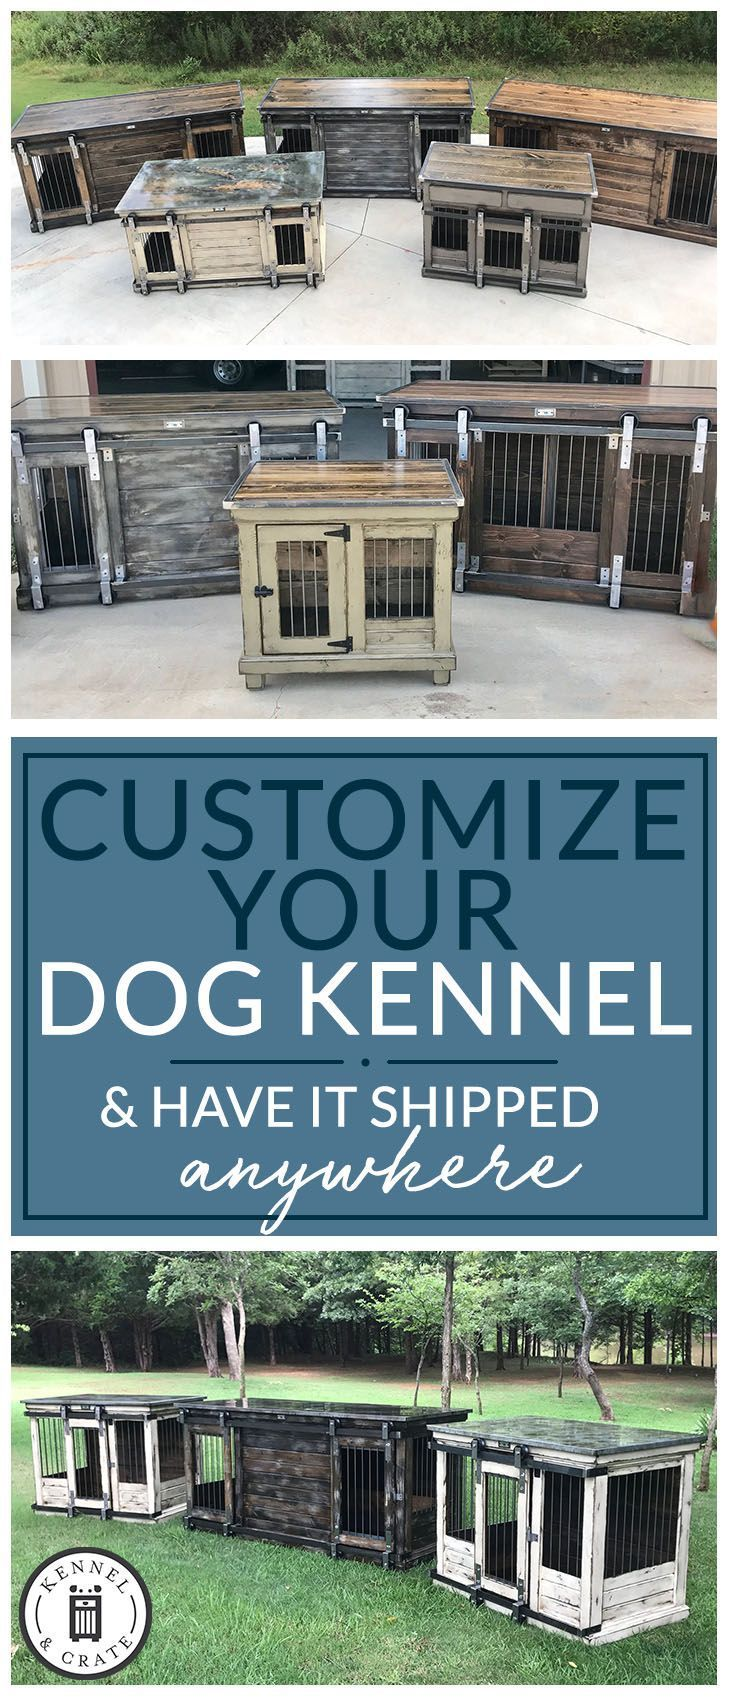 We create furniture for your dog(s); our crates double as entry tables, kitchen islands, coffee bars, credenzas, buffet tables, desks, dressers, night stands, end tables, & entertainment pieces.  #Kennelandcrate  #Customorders #Stylishdogkennel #dogkennel